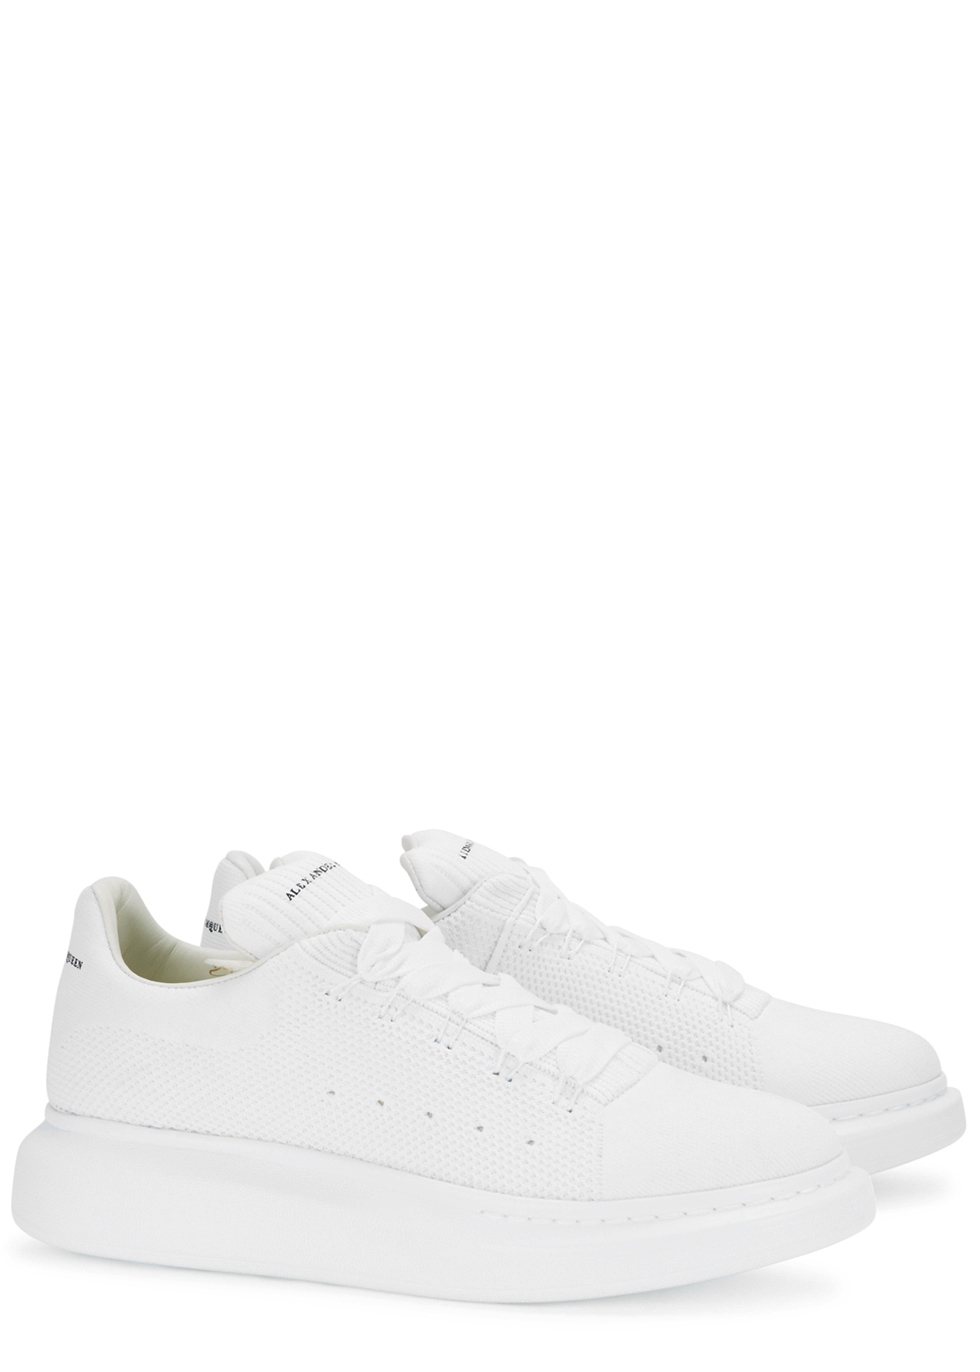 Alexander McQueen White knitted trainers - Harvey Nichols 4aa241d64